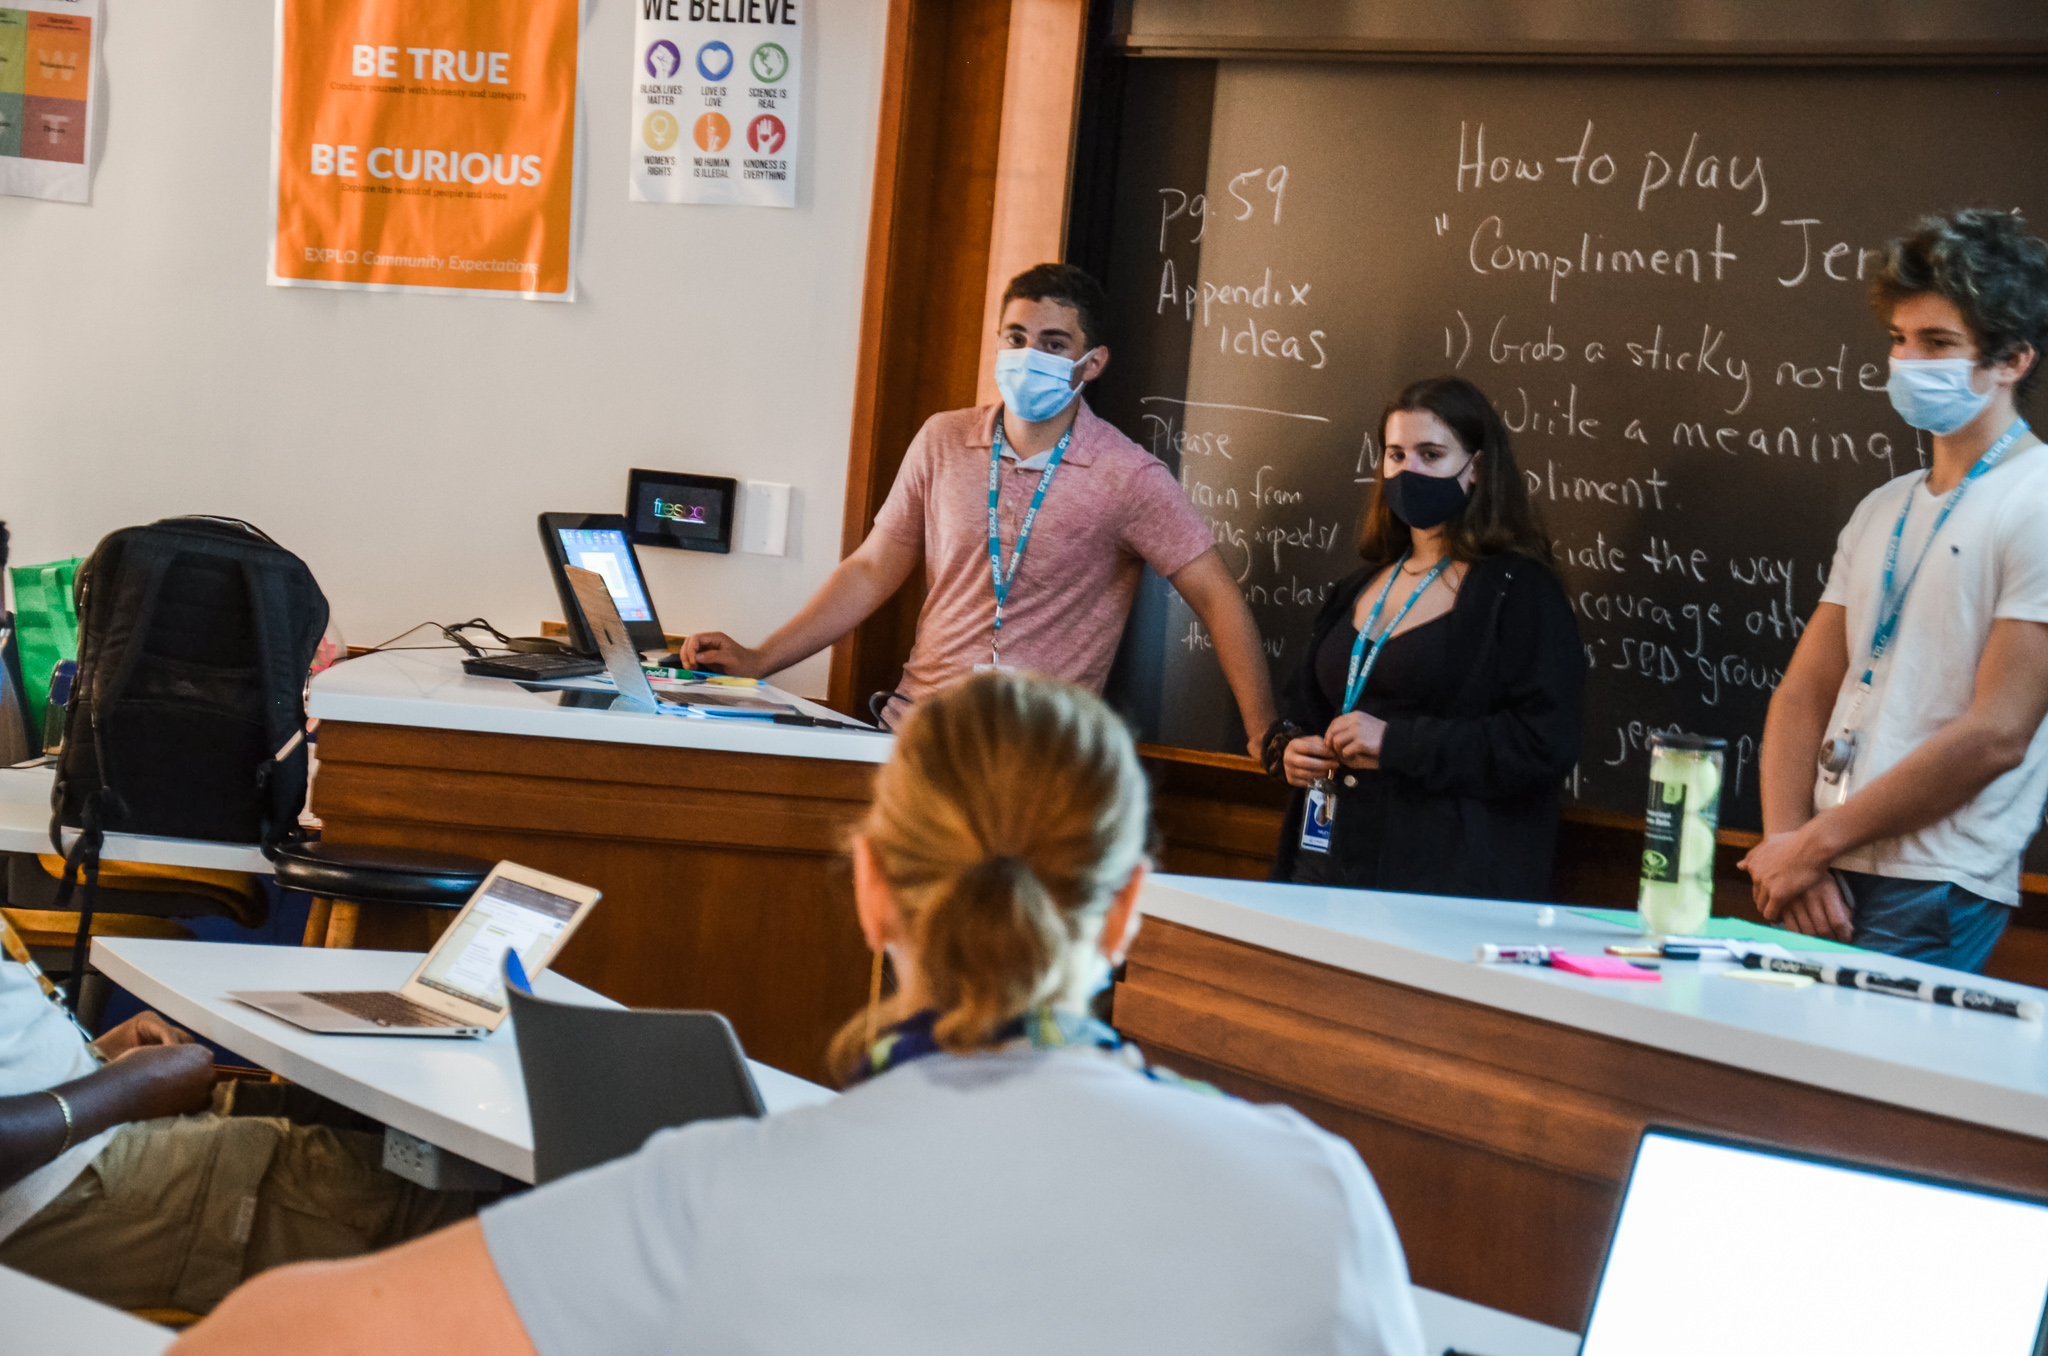 Three students stand in front of a blackboard while other students watch intently